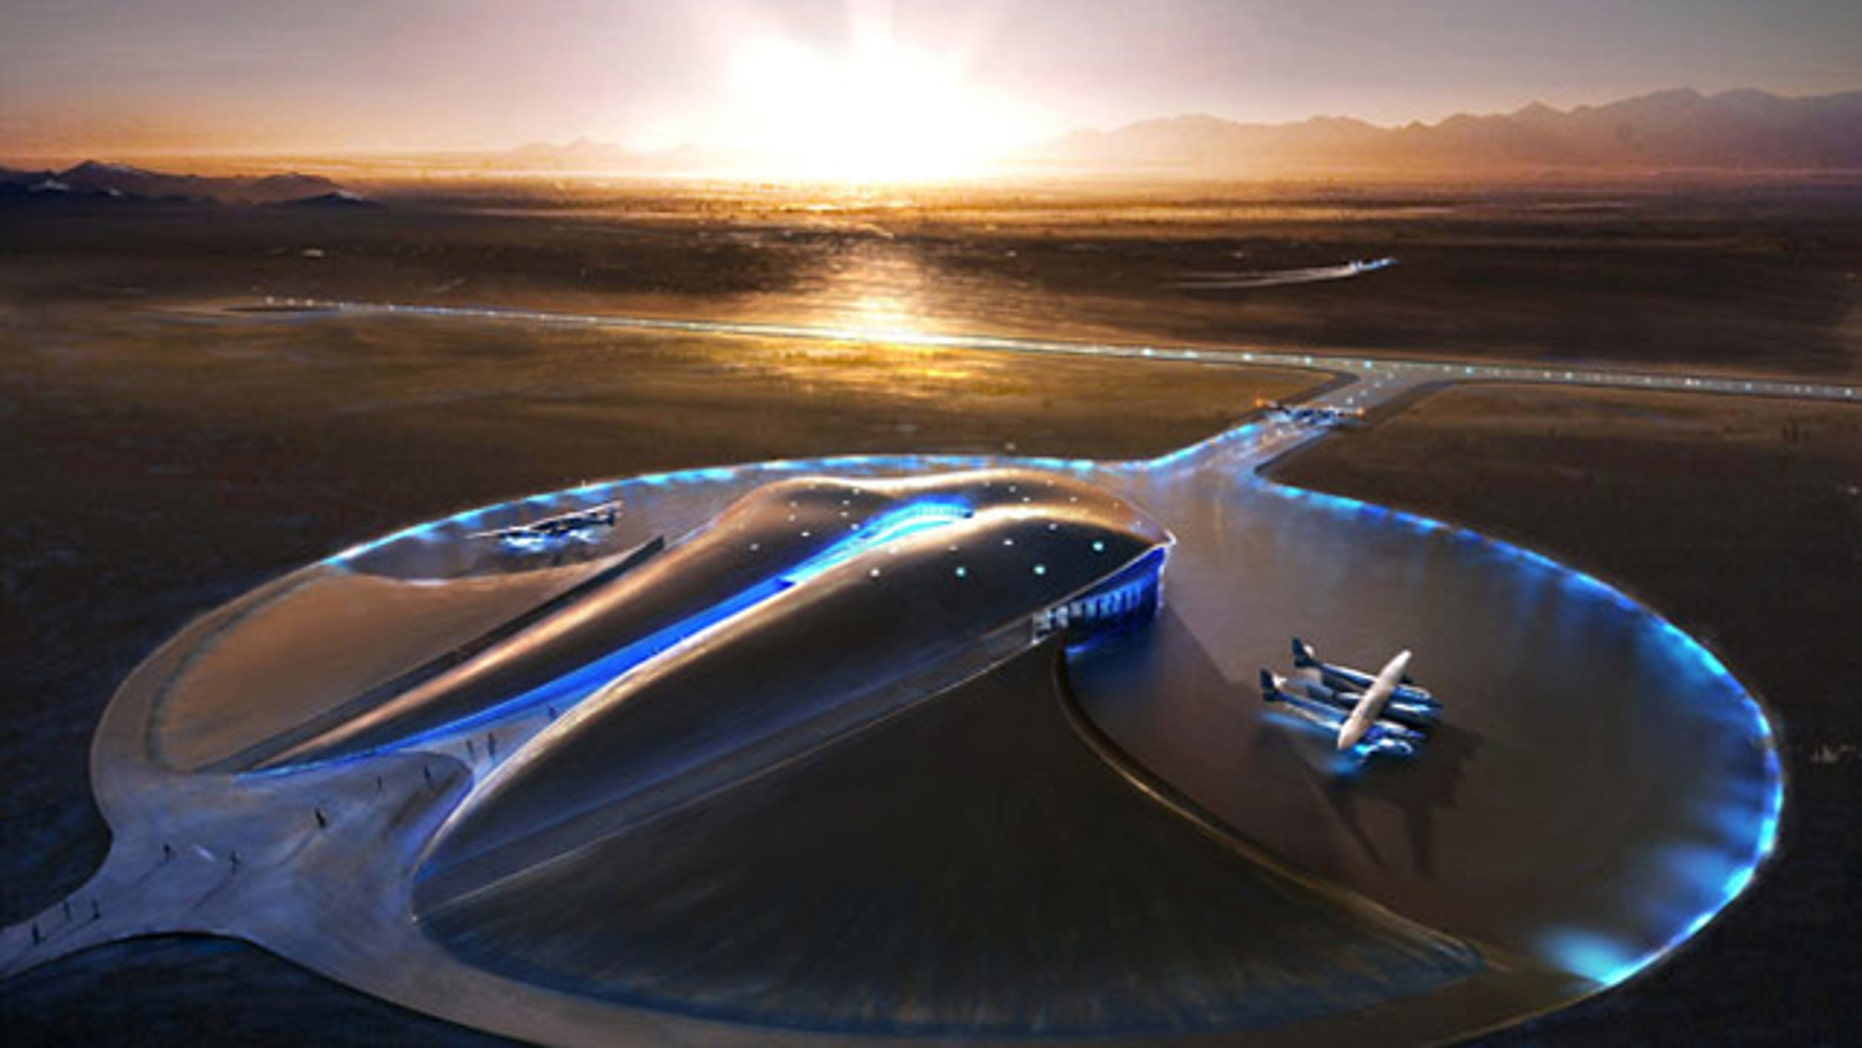 An artist's concept of Spaceport America, a suborbital spaceport under construction in New Mexico.